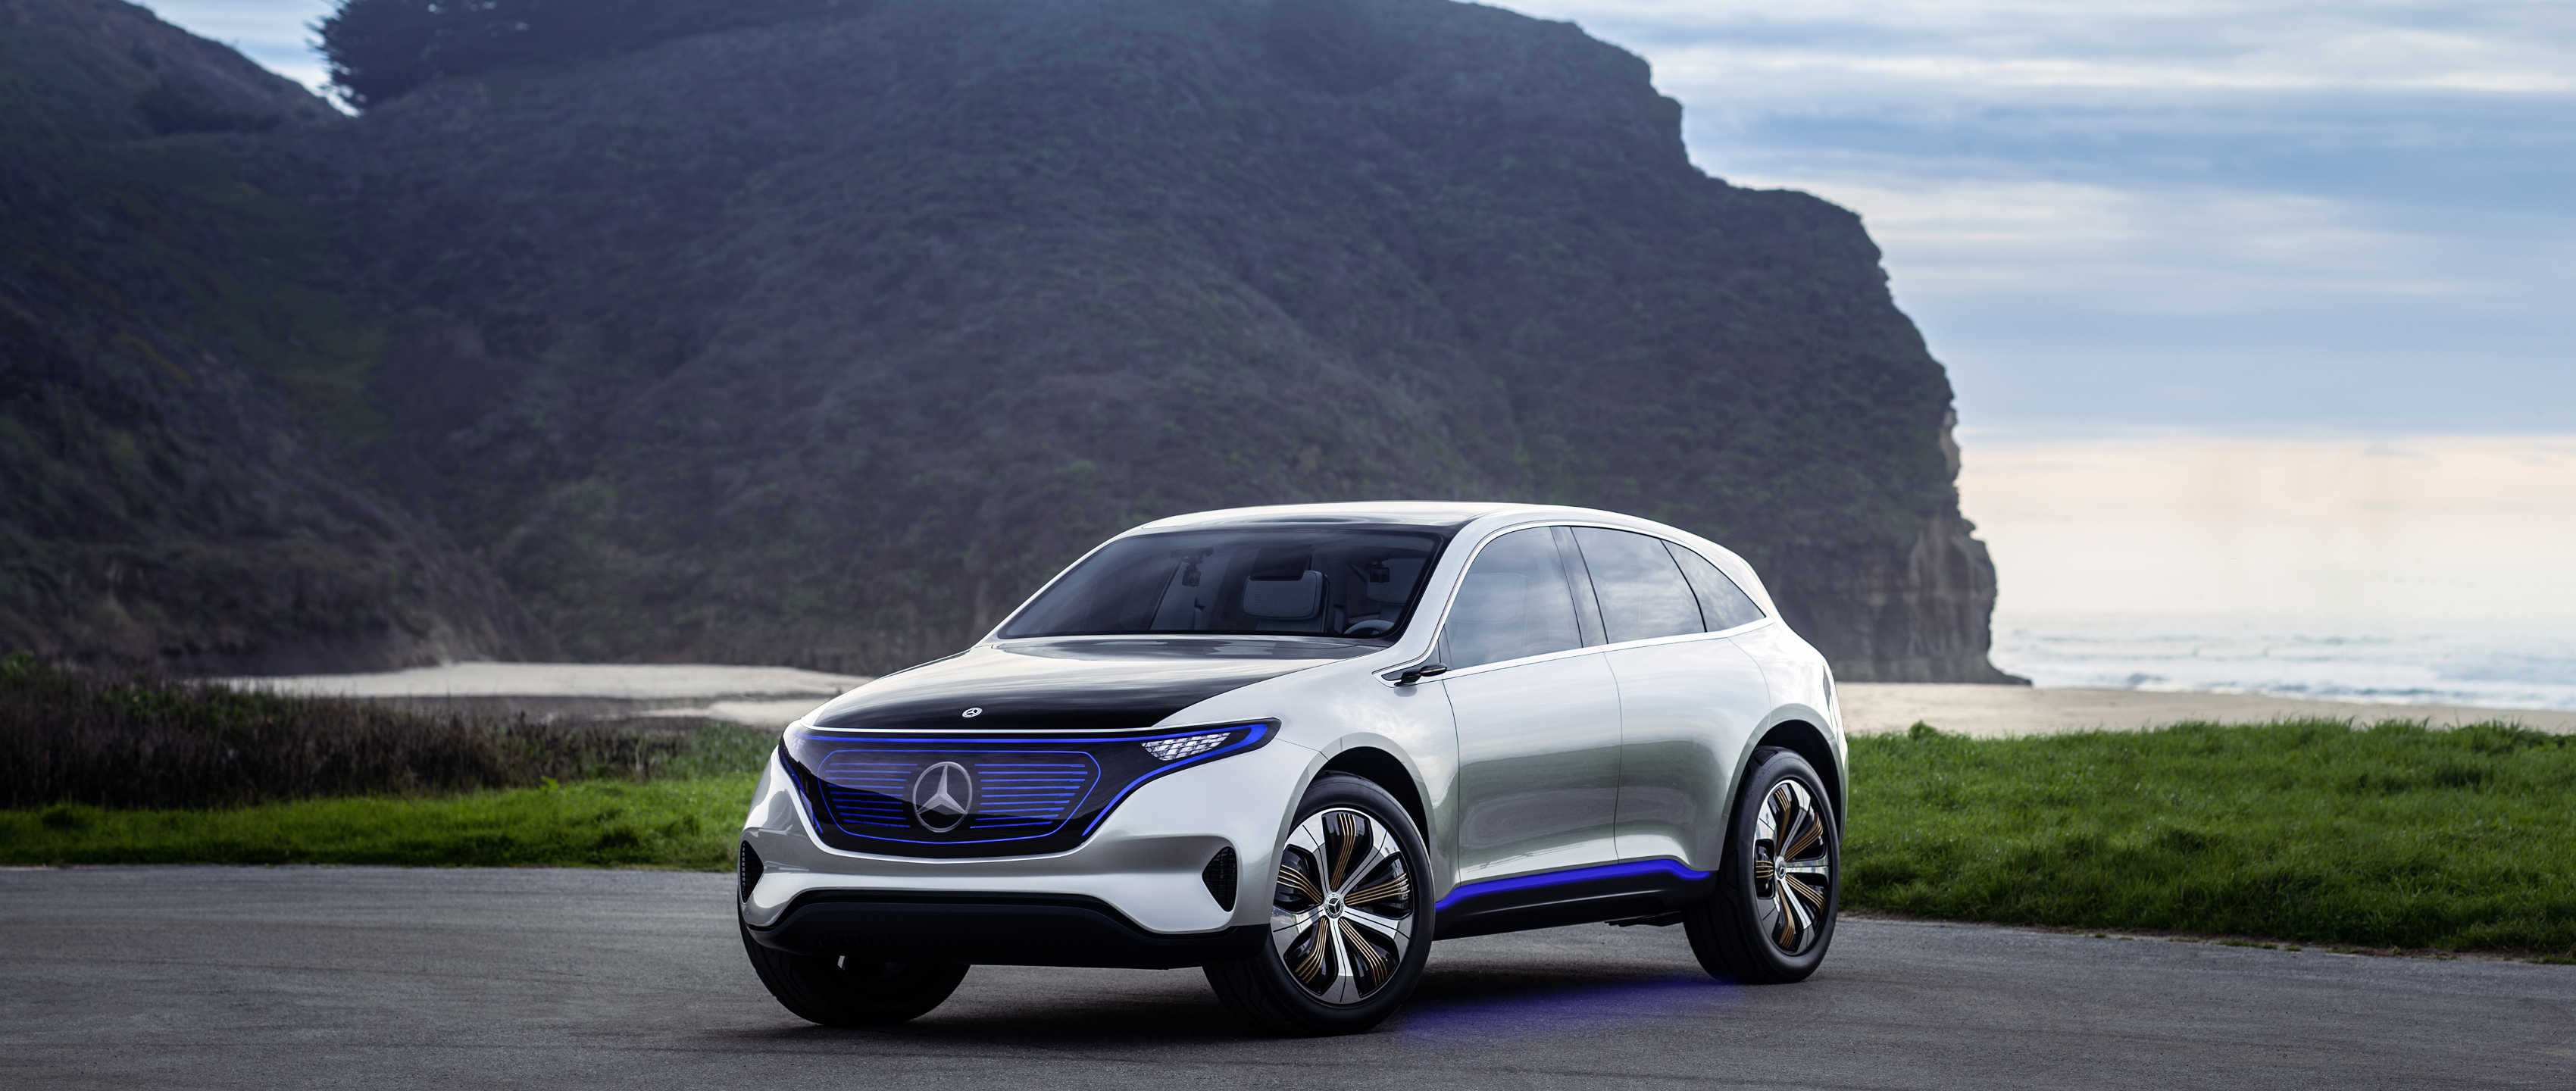 28 Gallery of Upcoming Mercedes Cars In India 2020 Exterior for Upcoming Mercedes Cars In India 2020